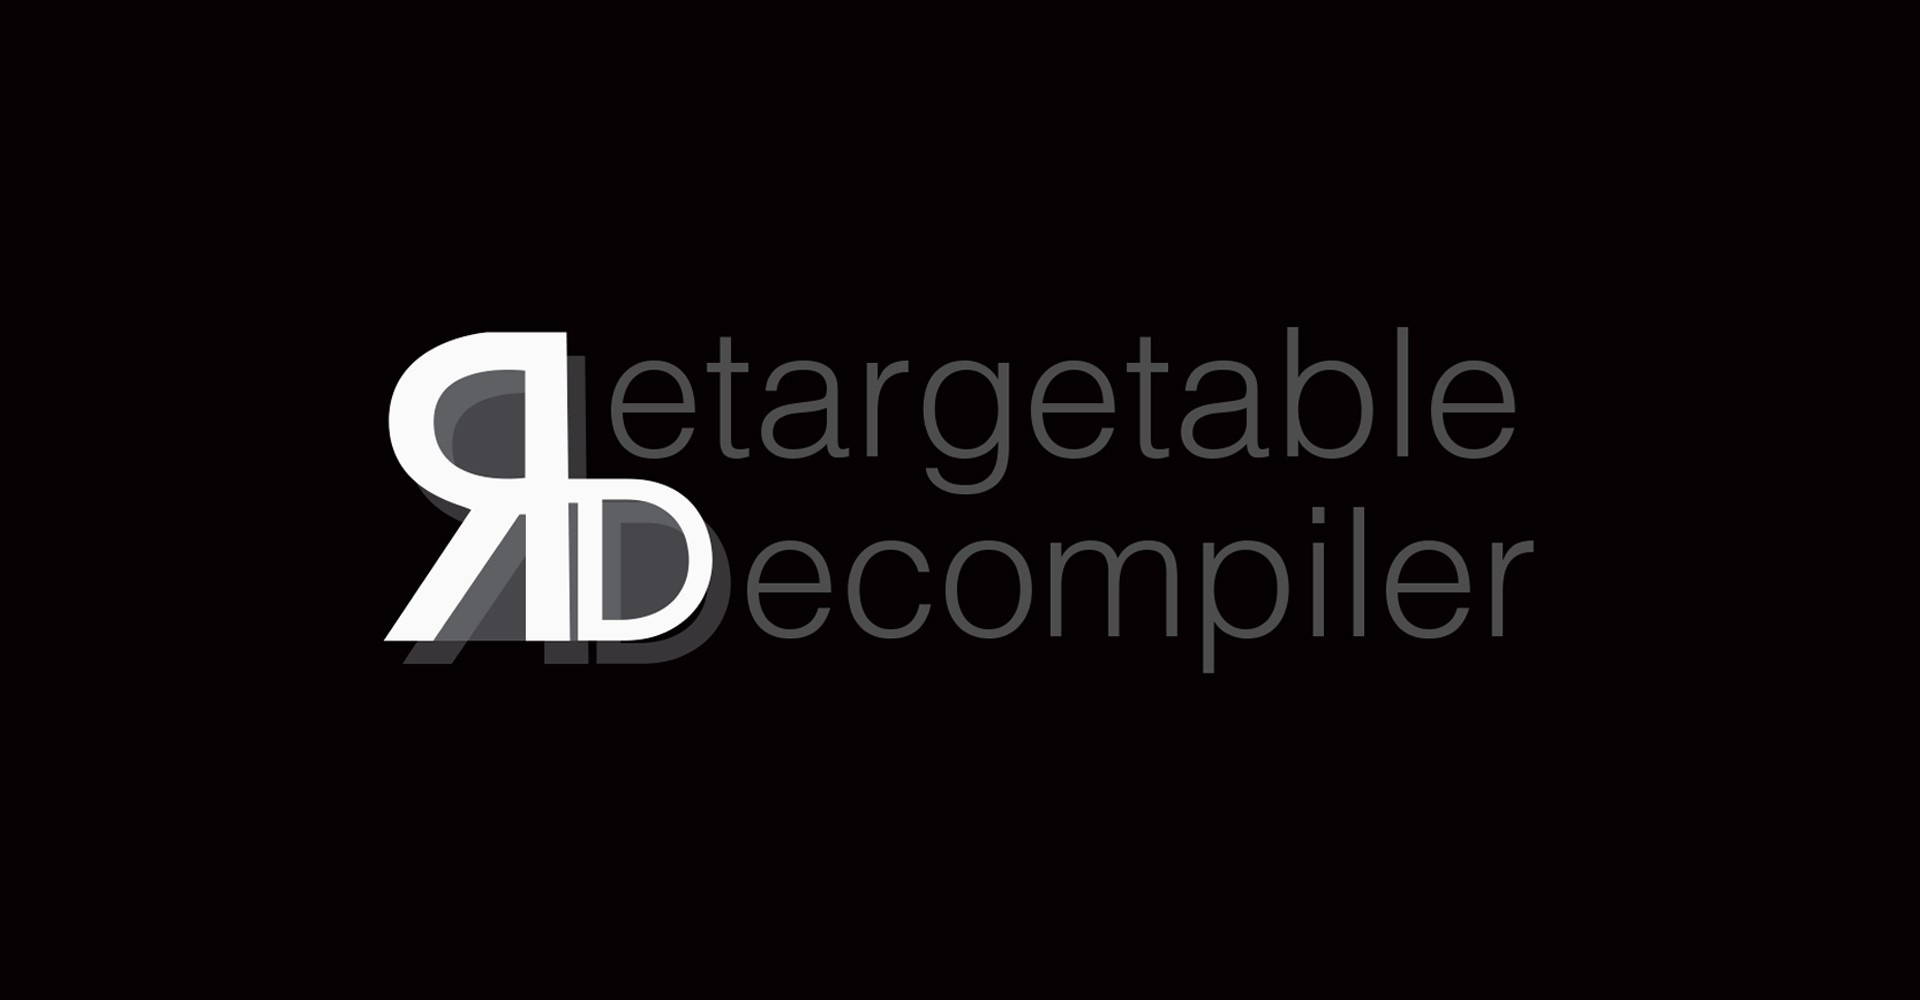 Avast_blog_retargetable_decompiler-1.jpg